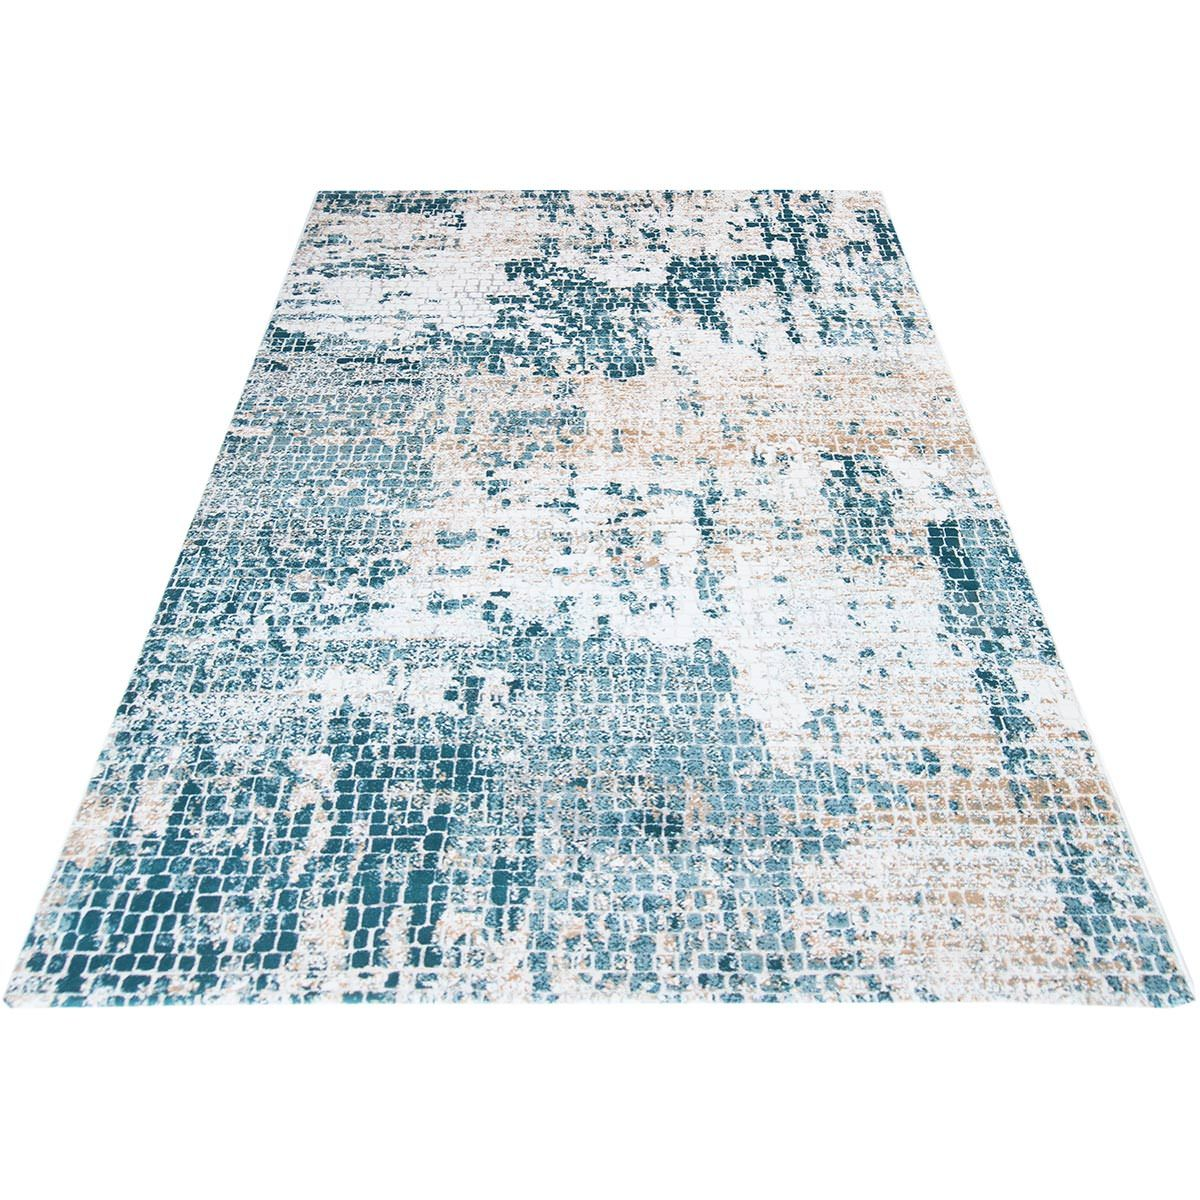 Madrid Rug 01 Blue 6